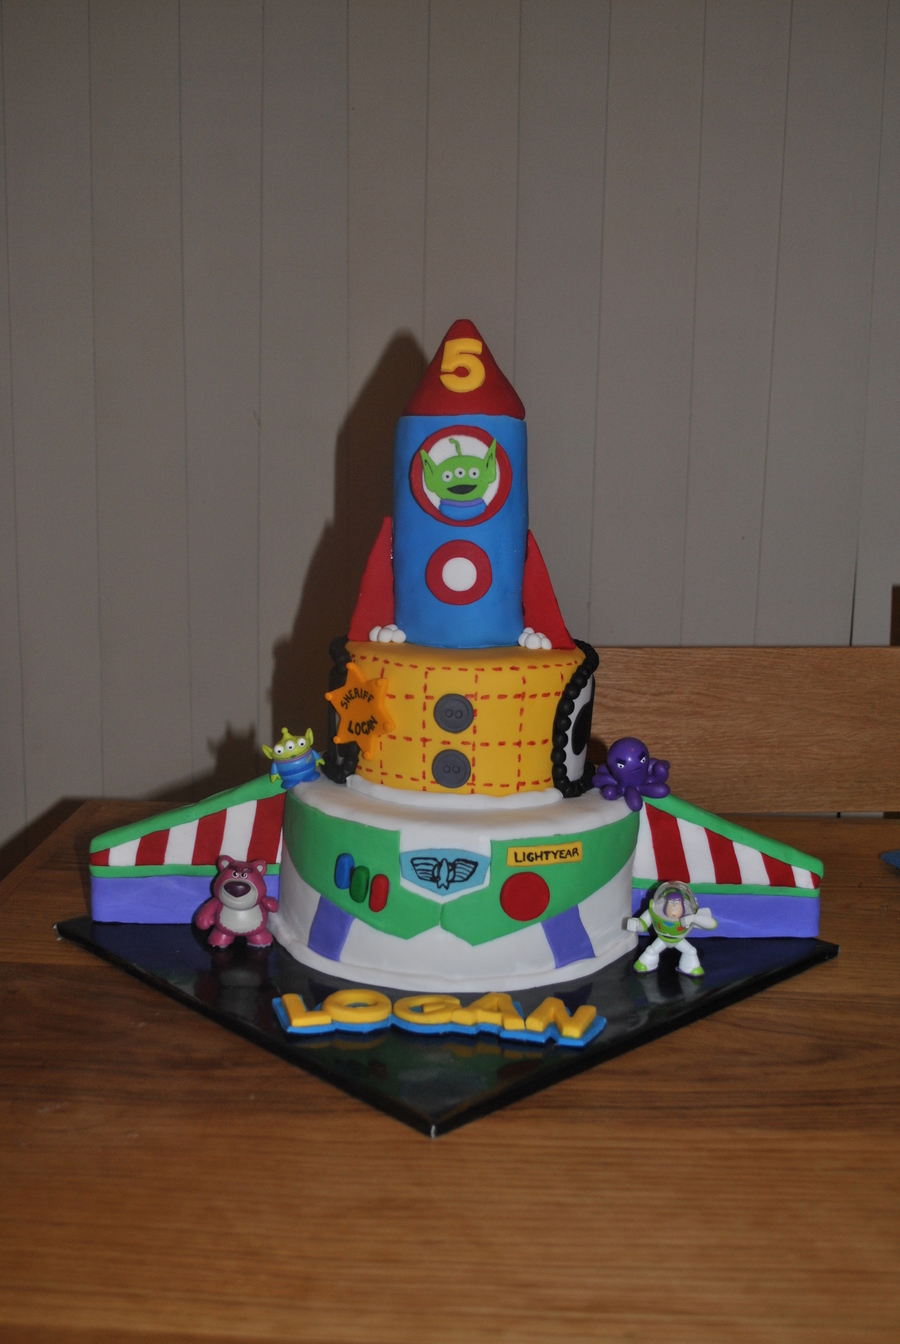 Toy Birthday Cake